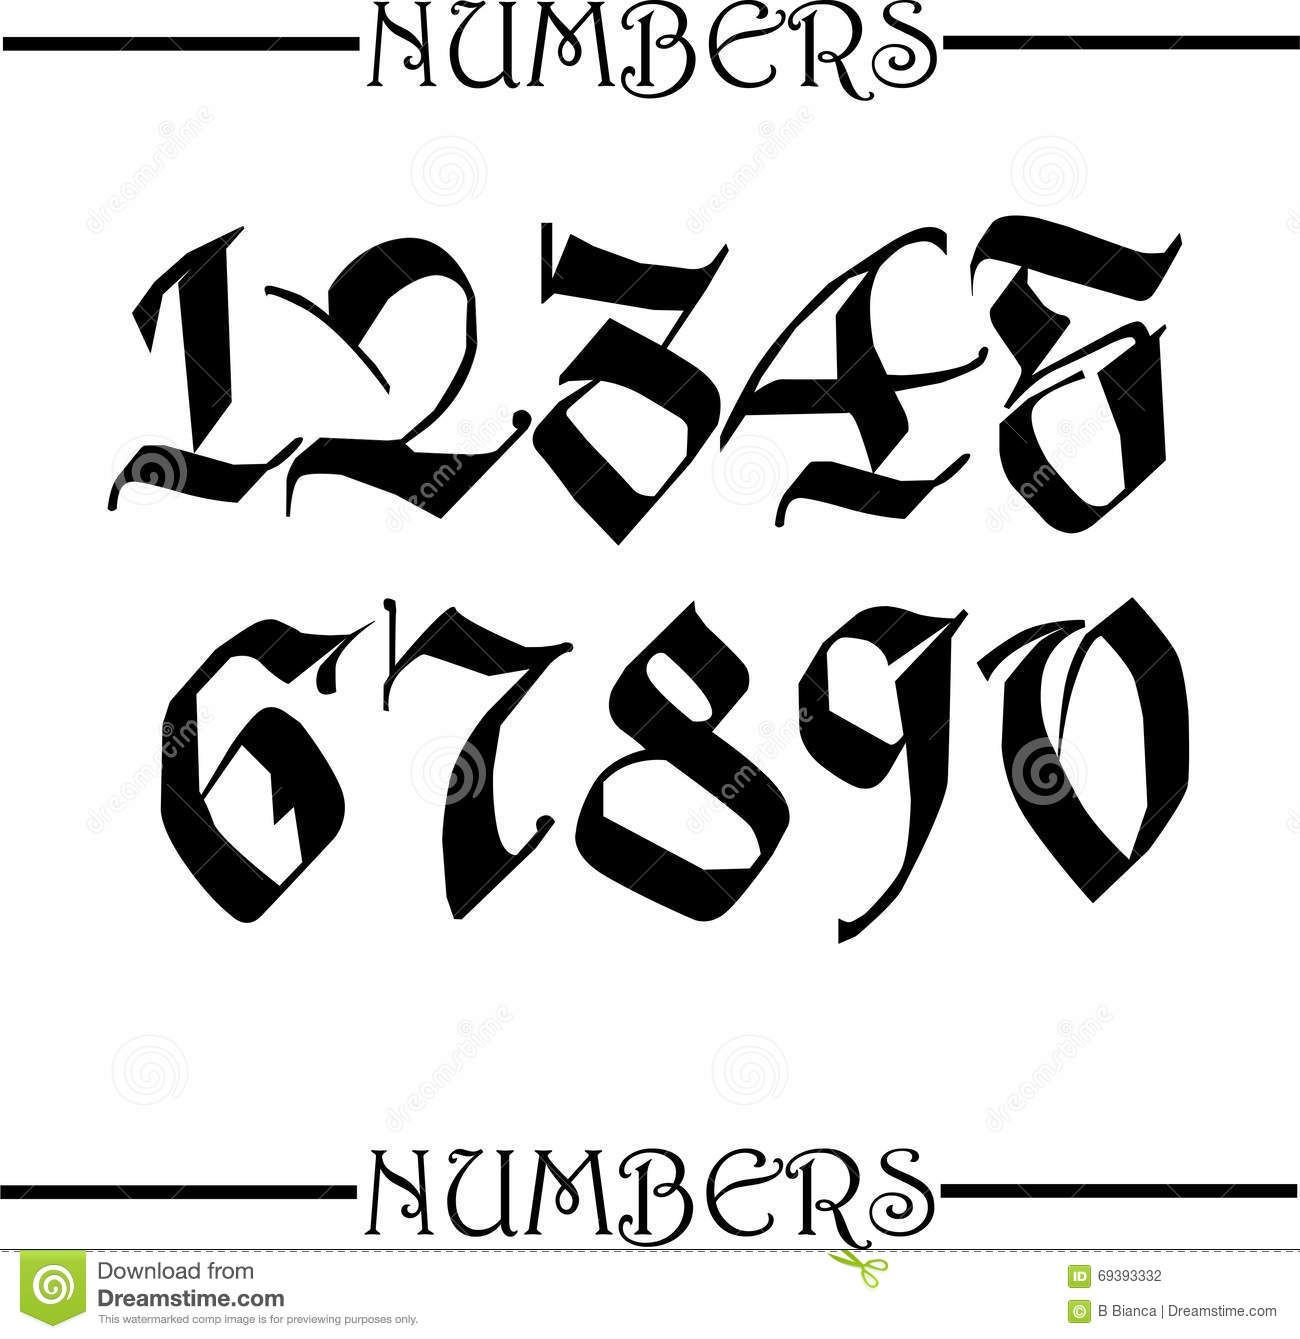 Gothic Calligraphy Numbers Images